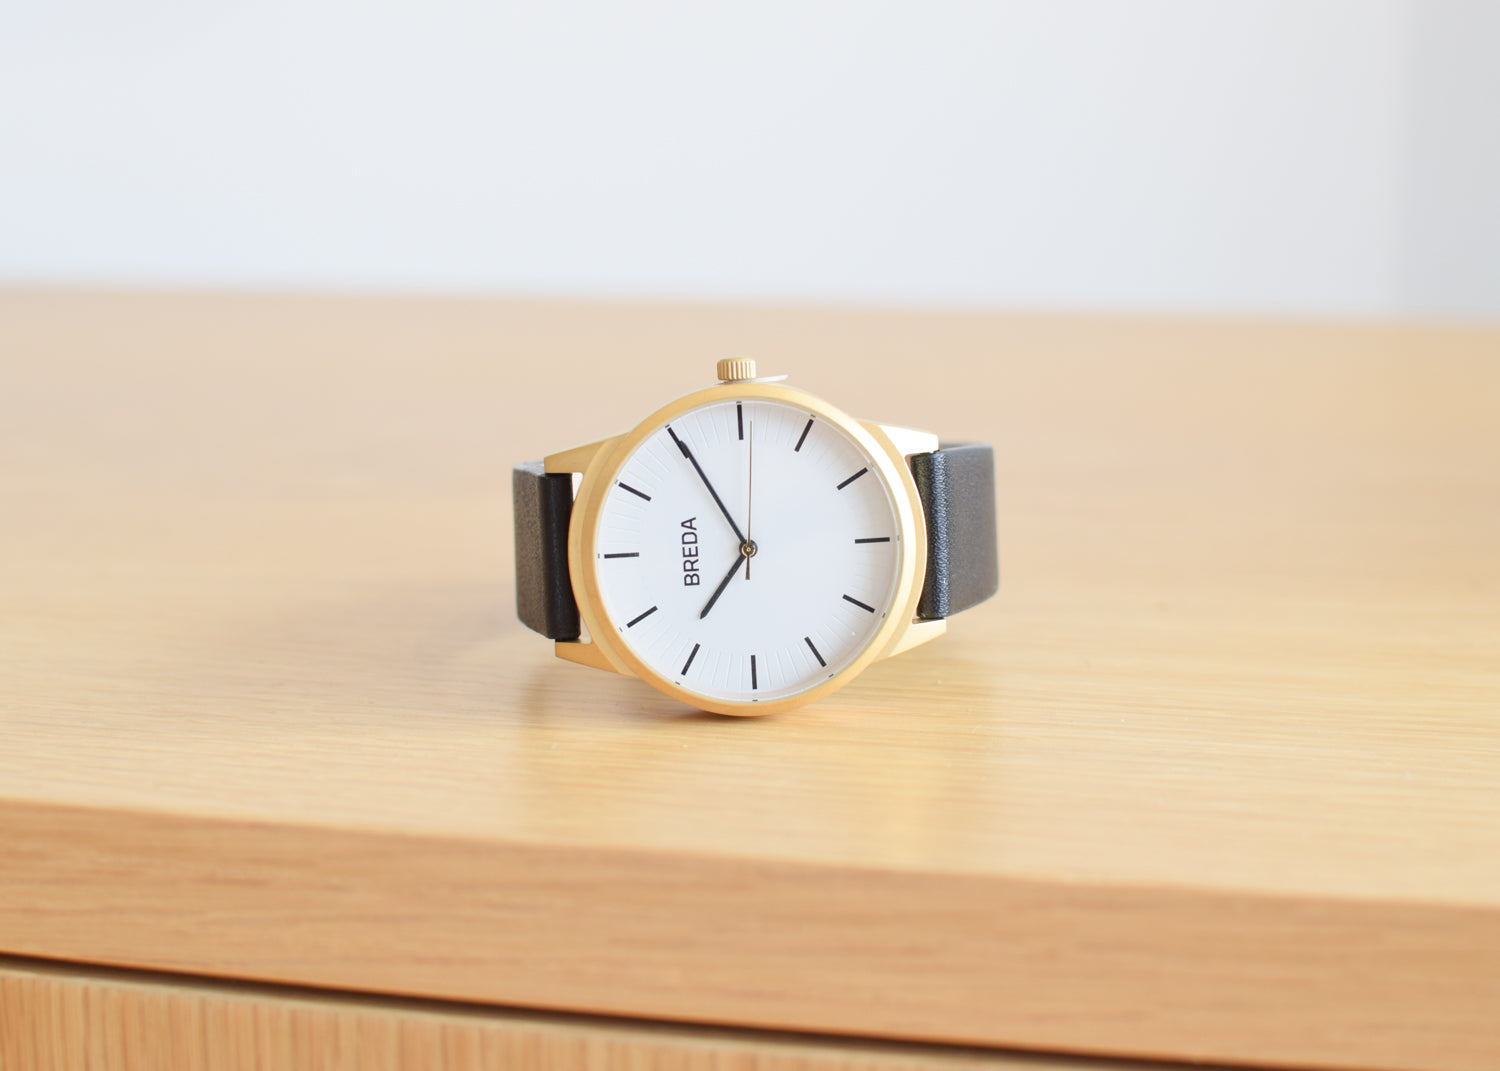 The Bresson Watch from Breda in black and gold.